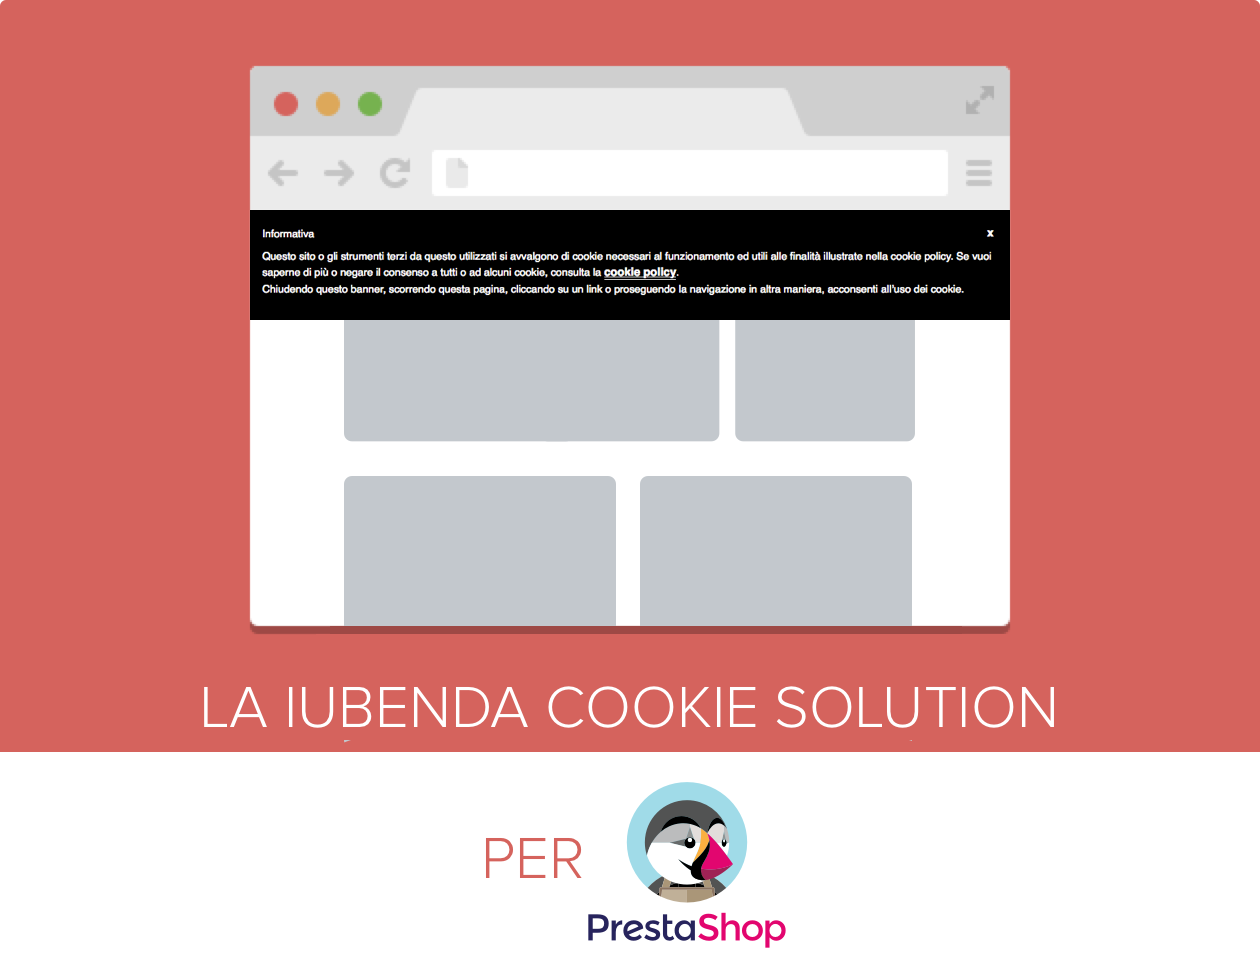 iubenda Cookie Solution per PrestaShop